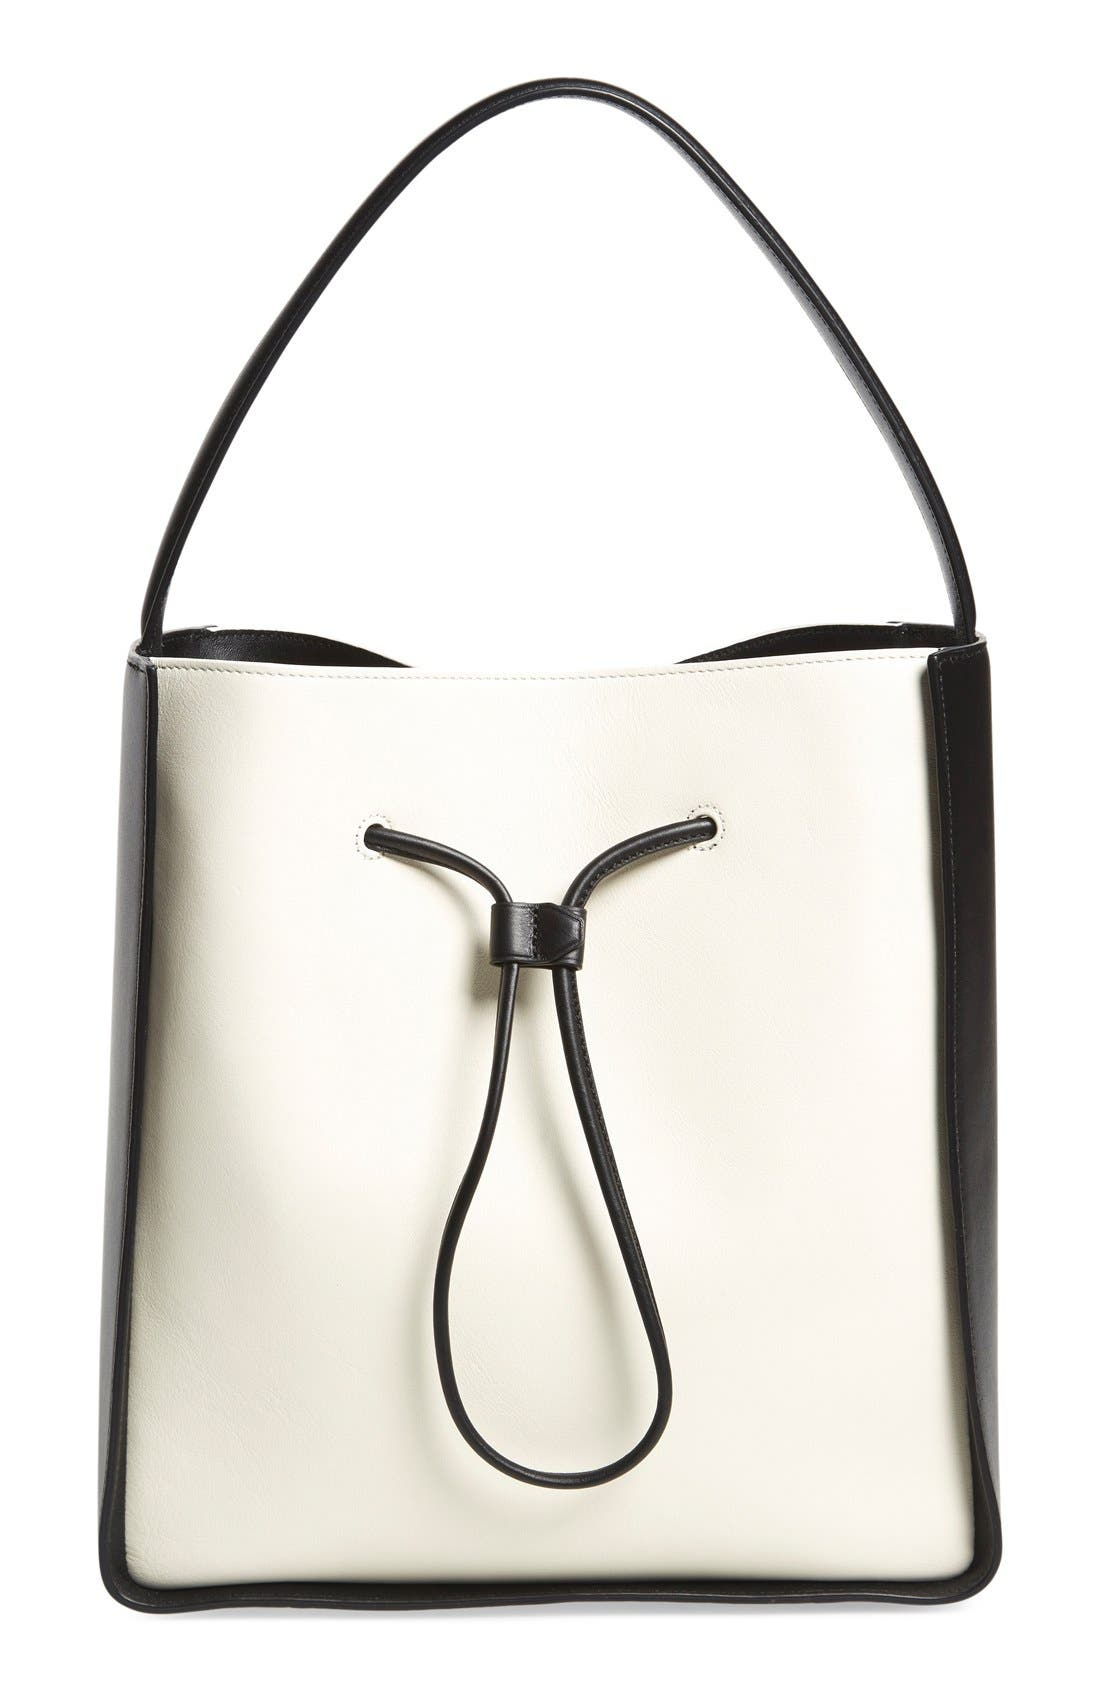 Alternate Image 1 Selected - 3.1 Phillip Lim 'Large Soleil' Colorblock Bucket Bag